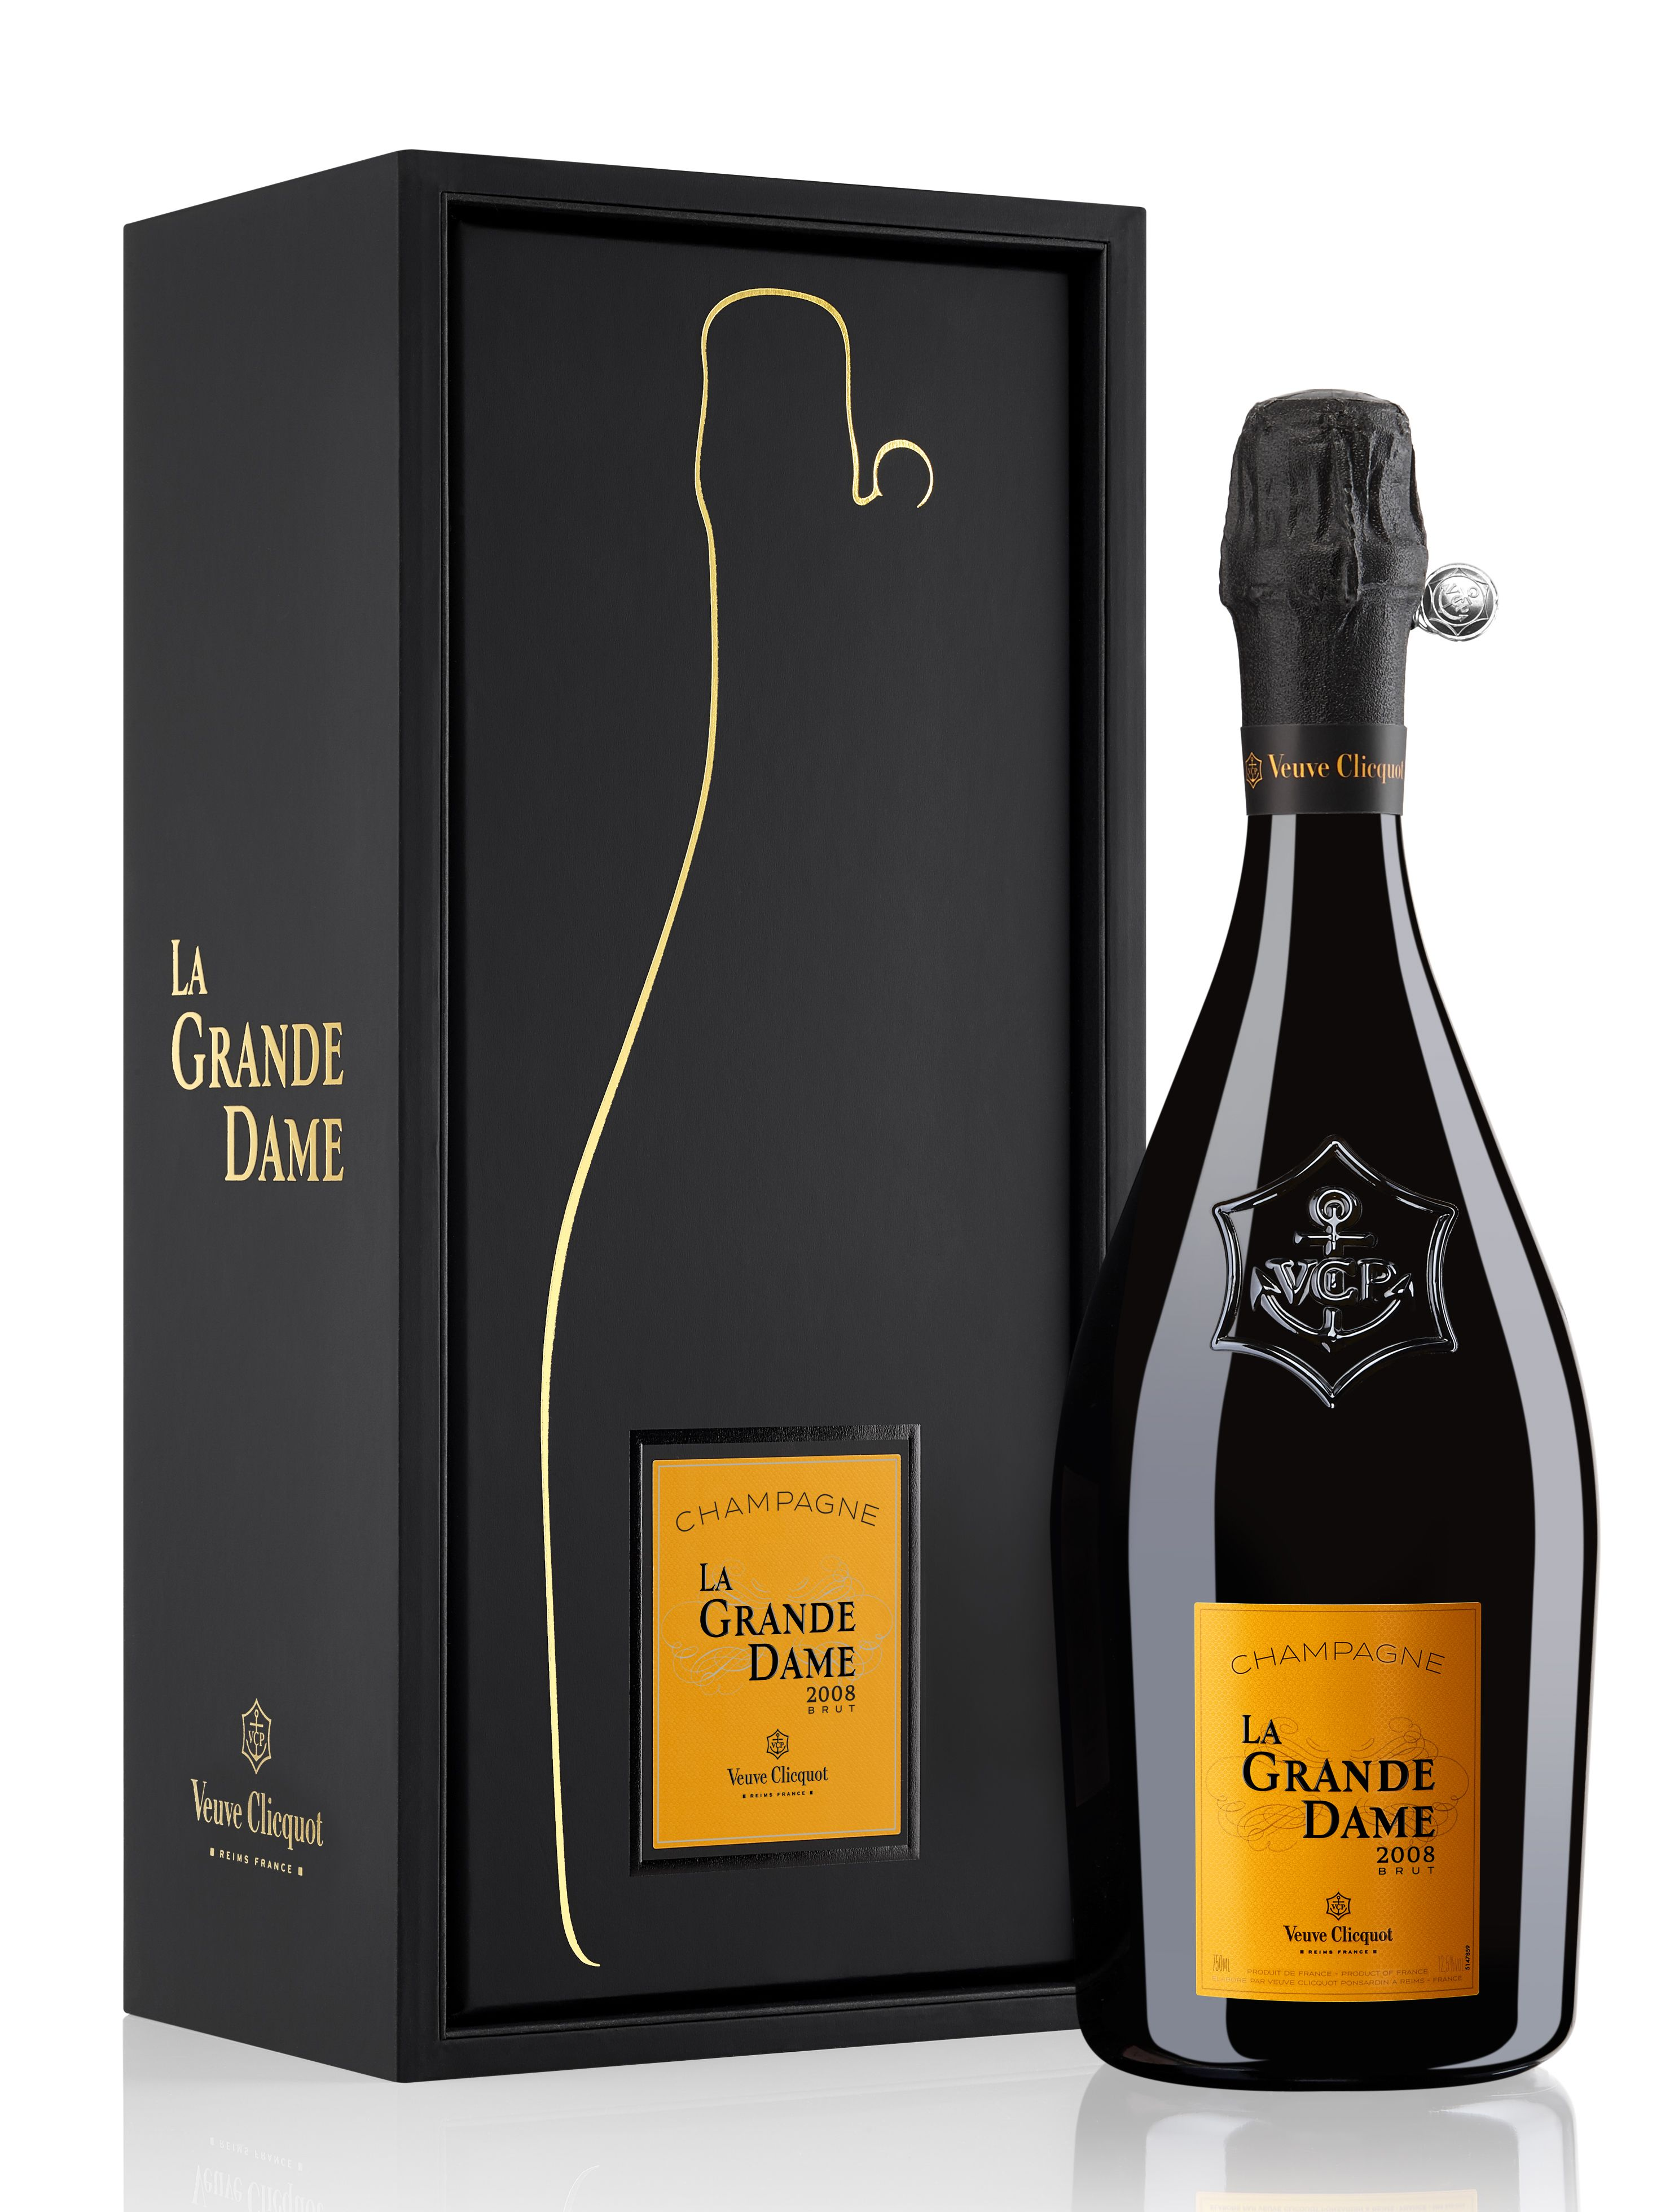 Veuve Clicquot La Grande Dame with Gift Box 2008 Gift Product Image